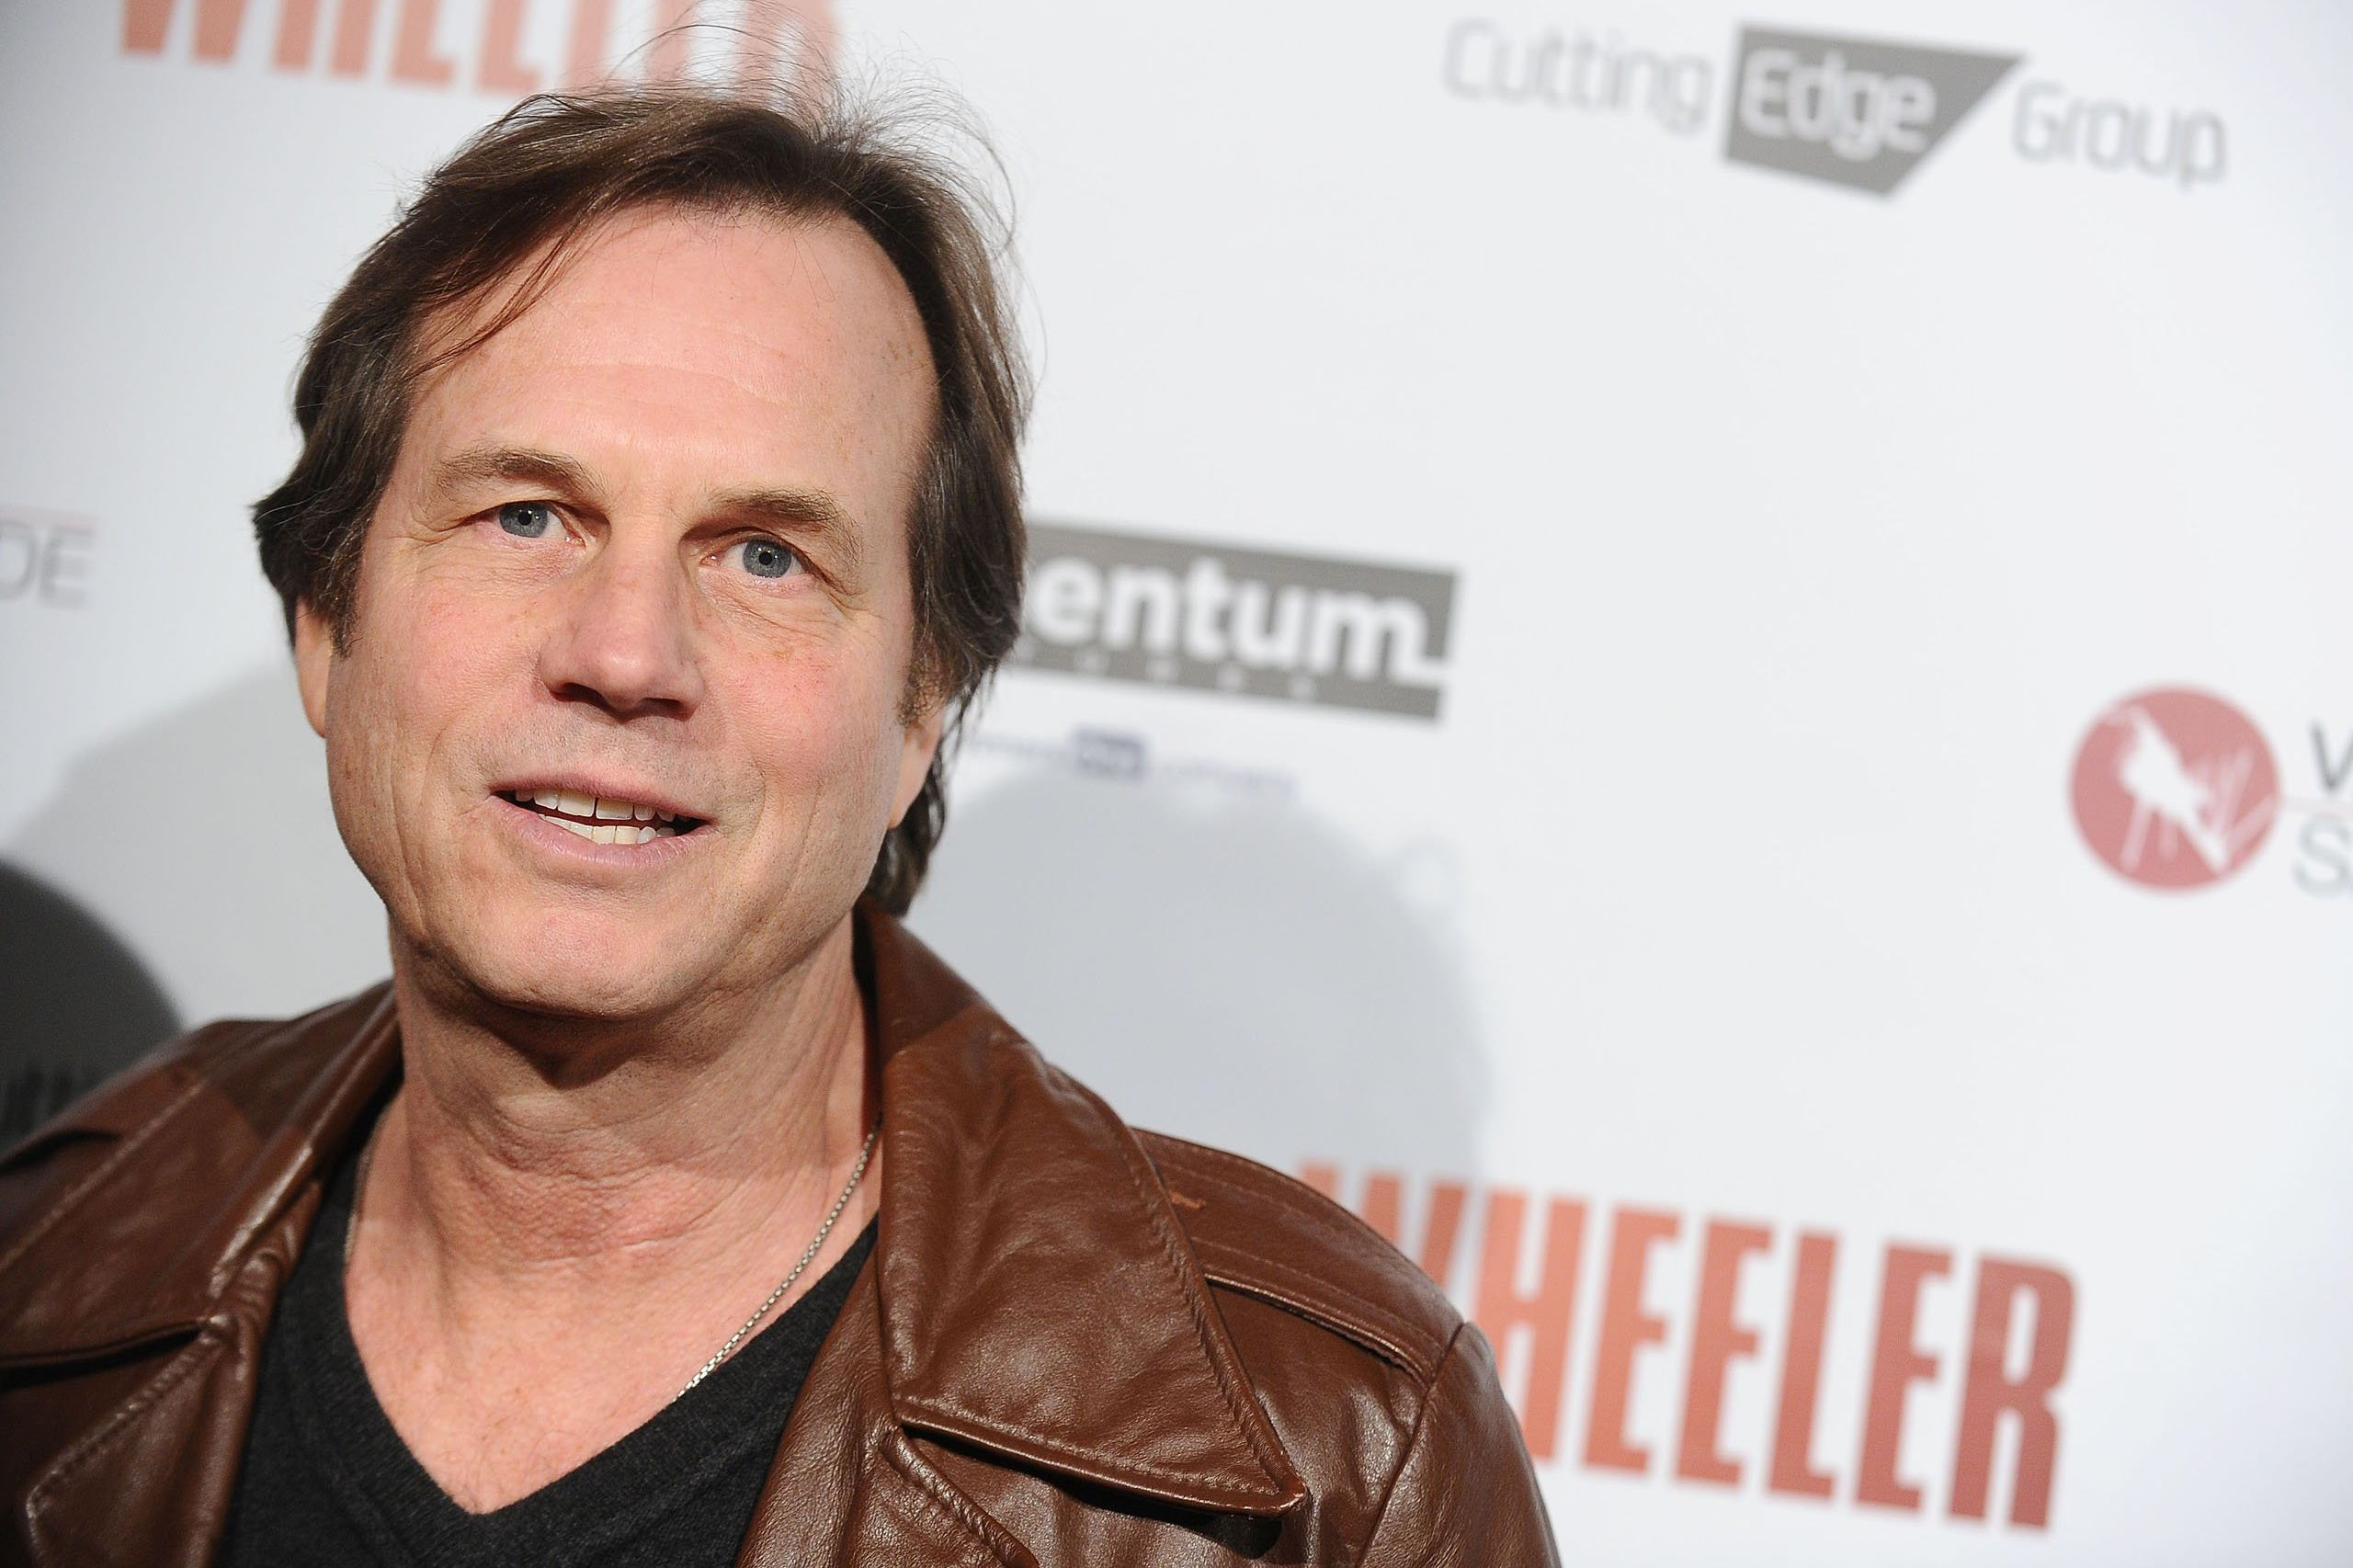 Texas Native Bill Paxton Dies at 61